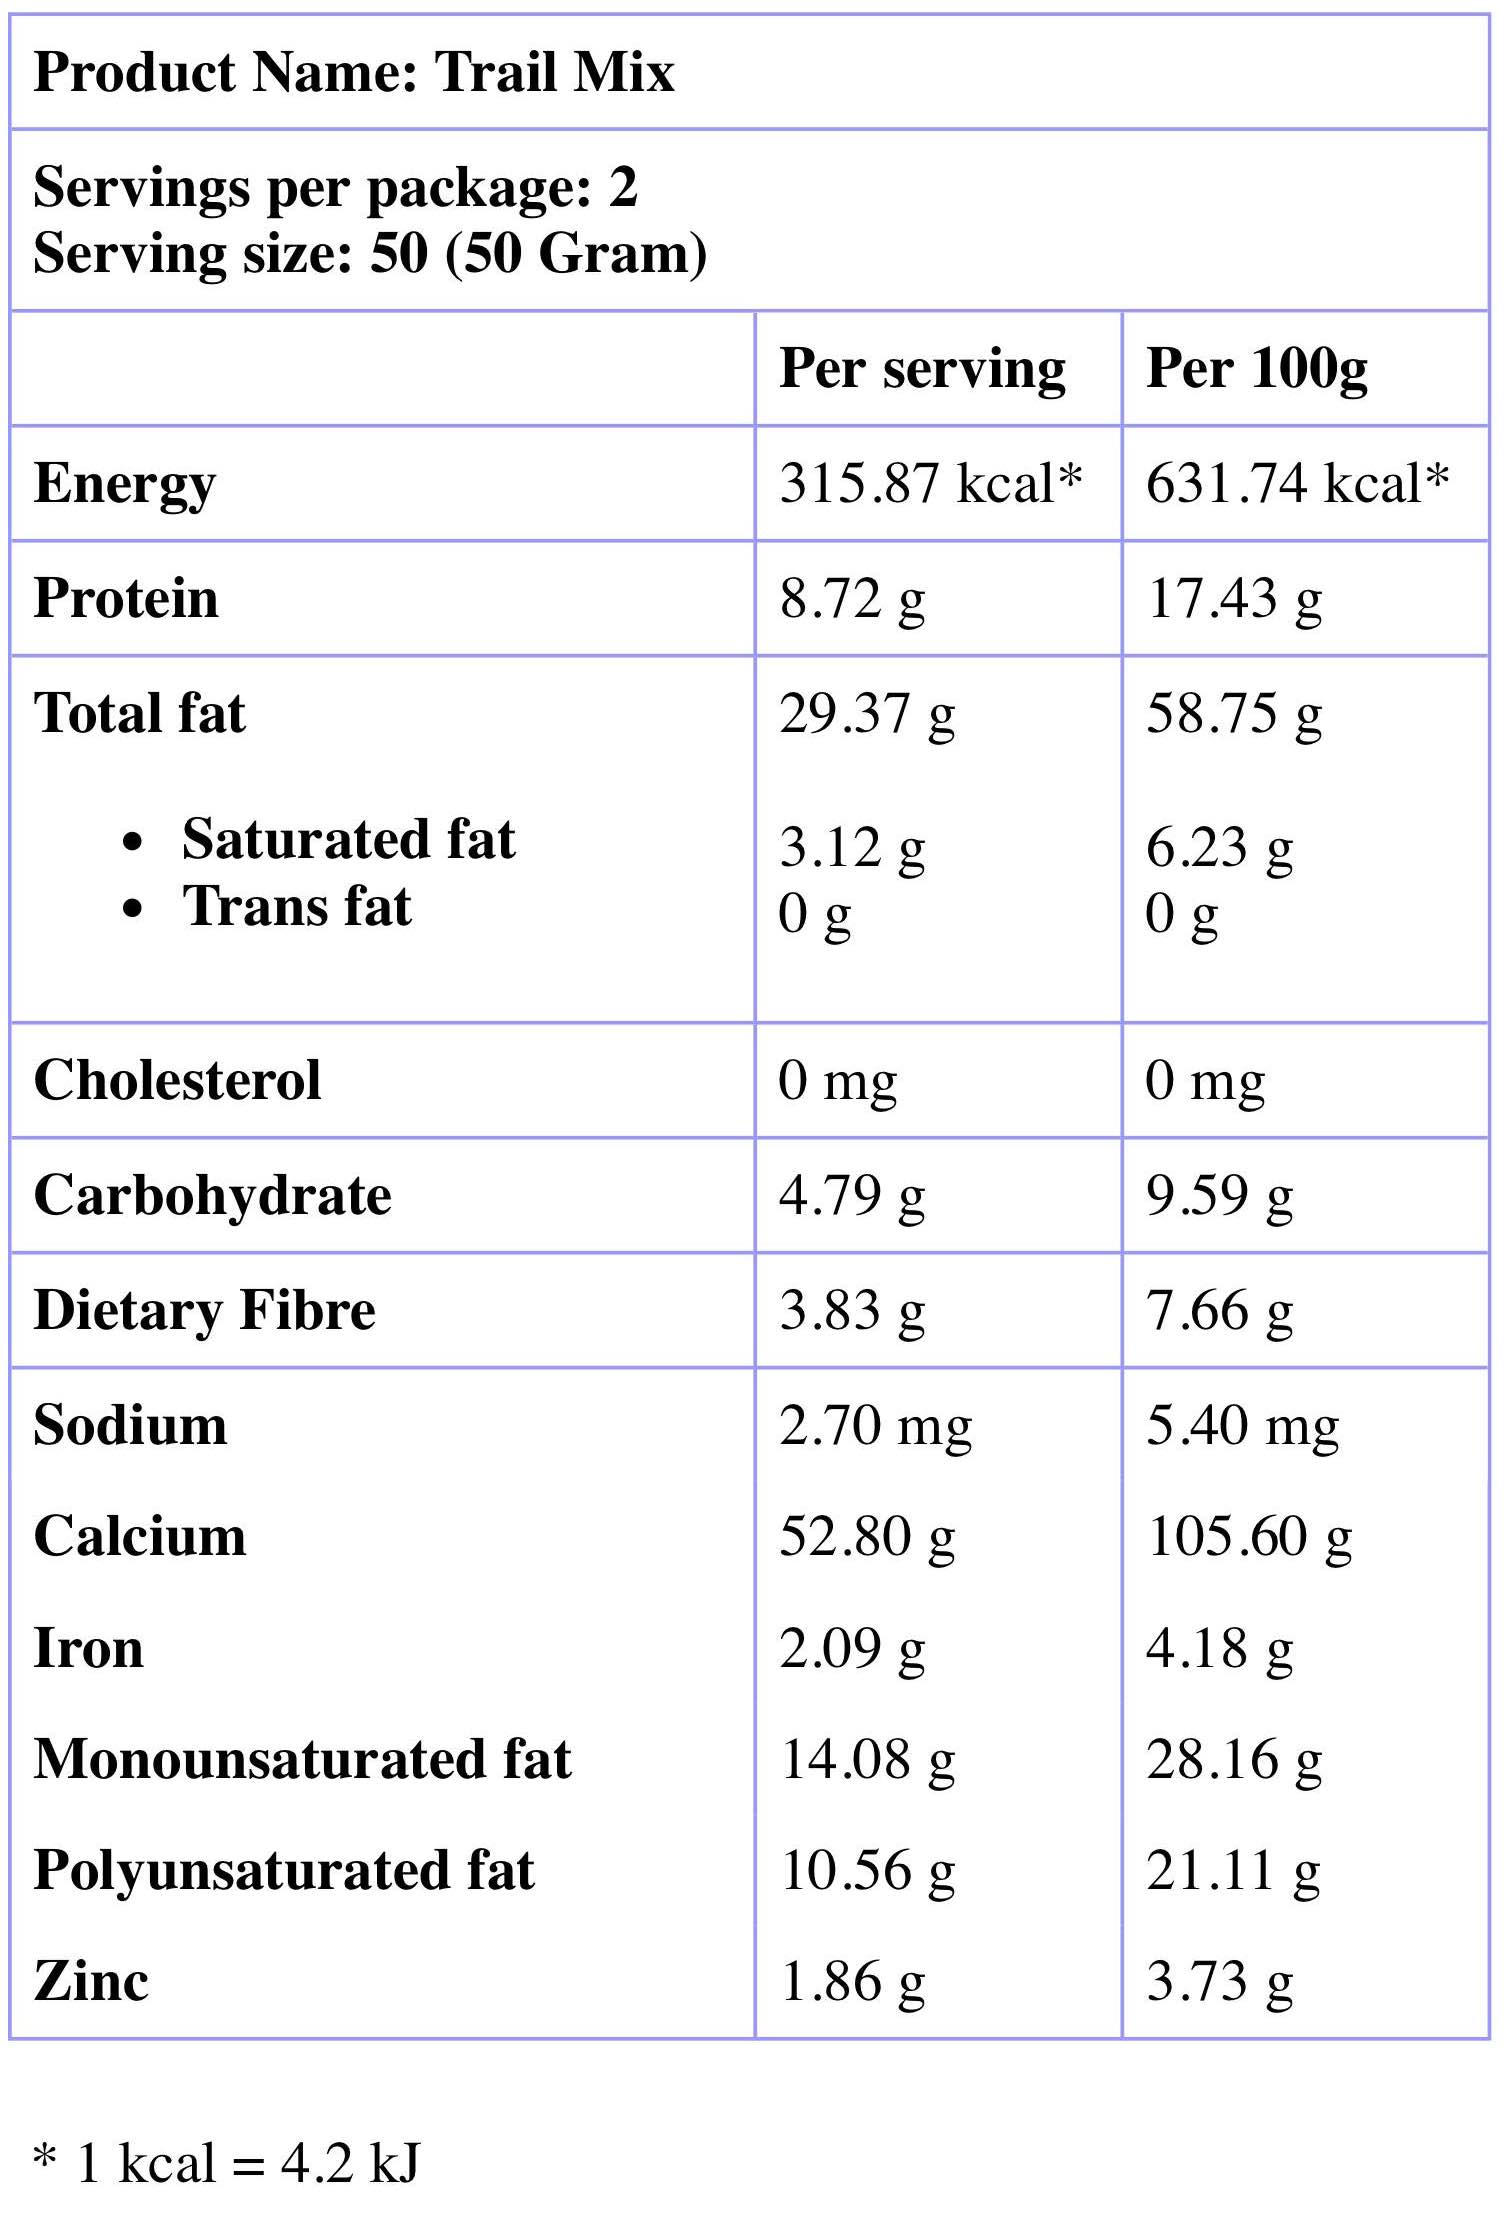 Trail Mix Nutritional Information